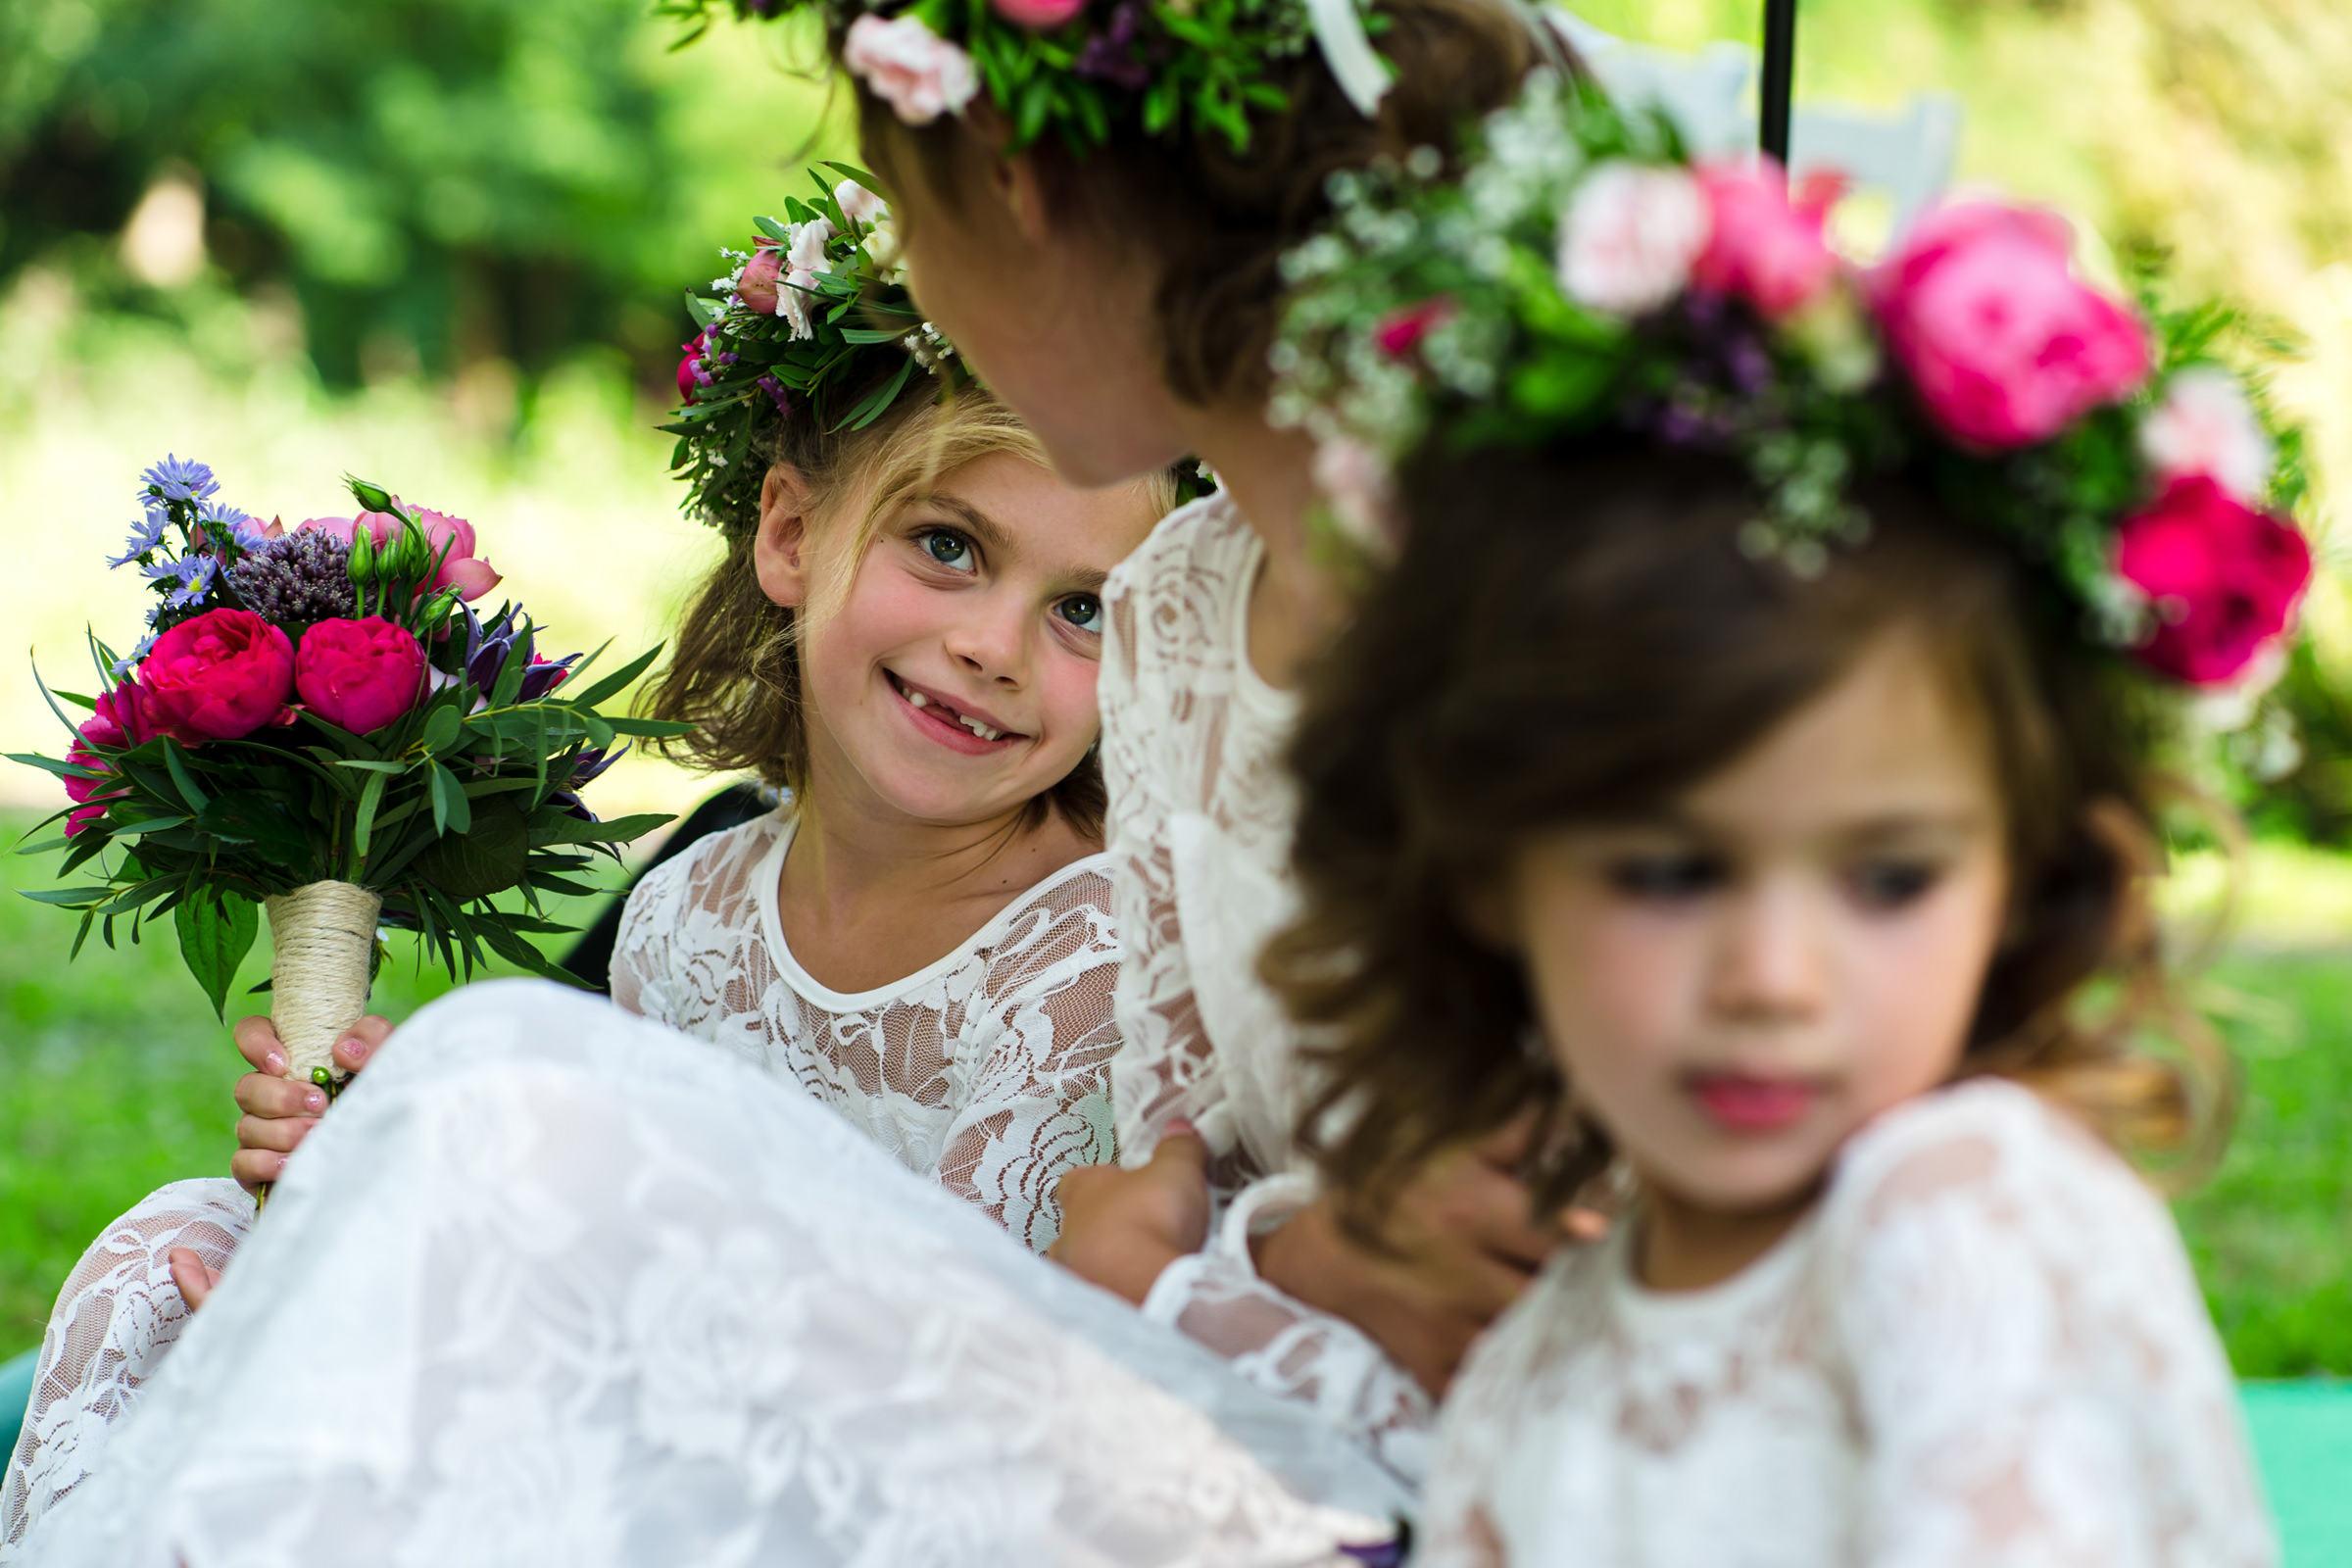 Flower girls in colorful floral crowns smiling at each other, photo by Philippe Swiggers